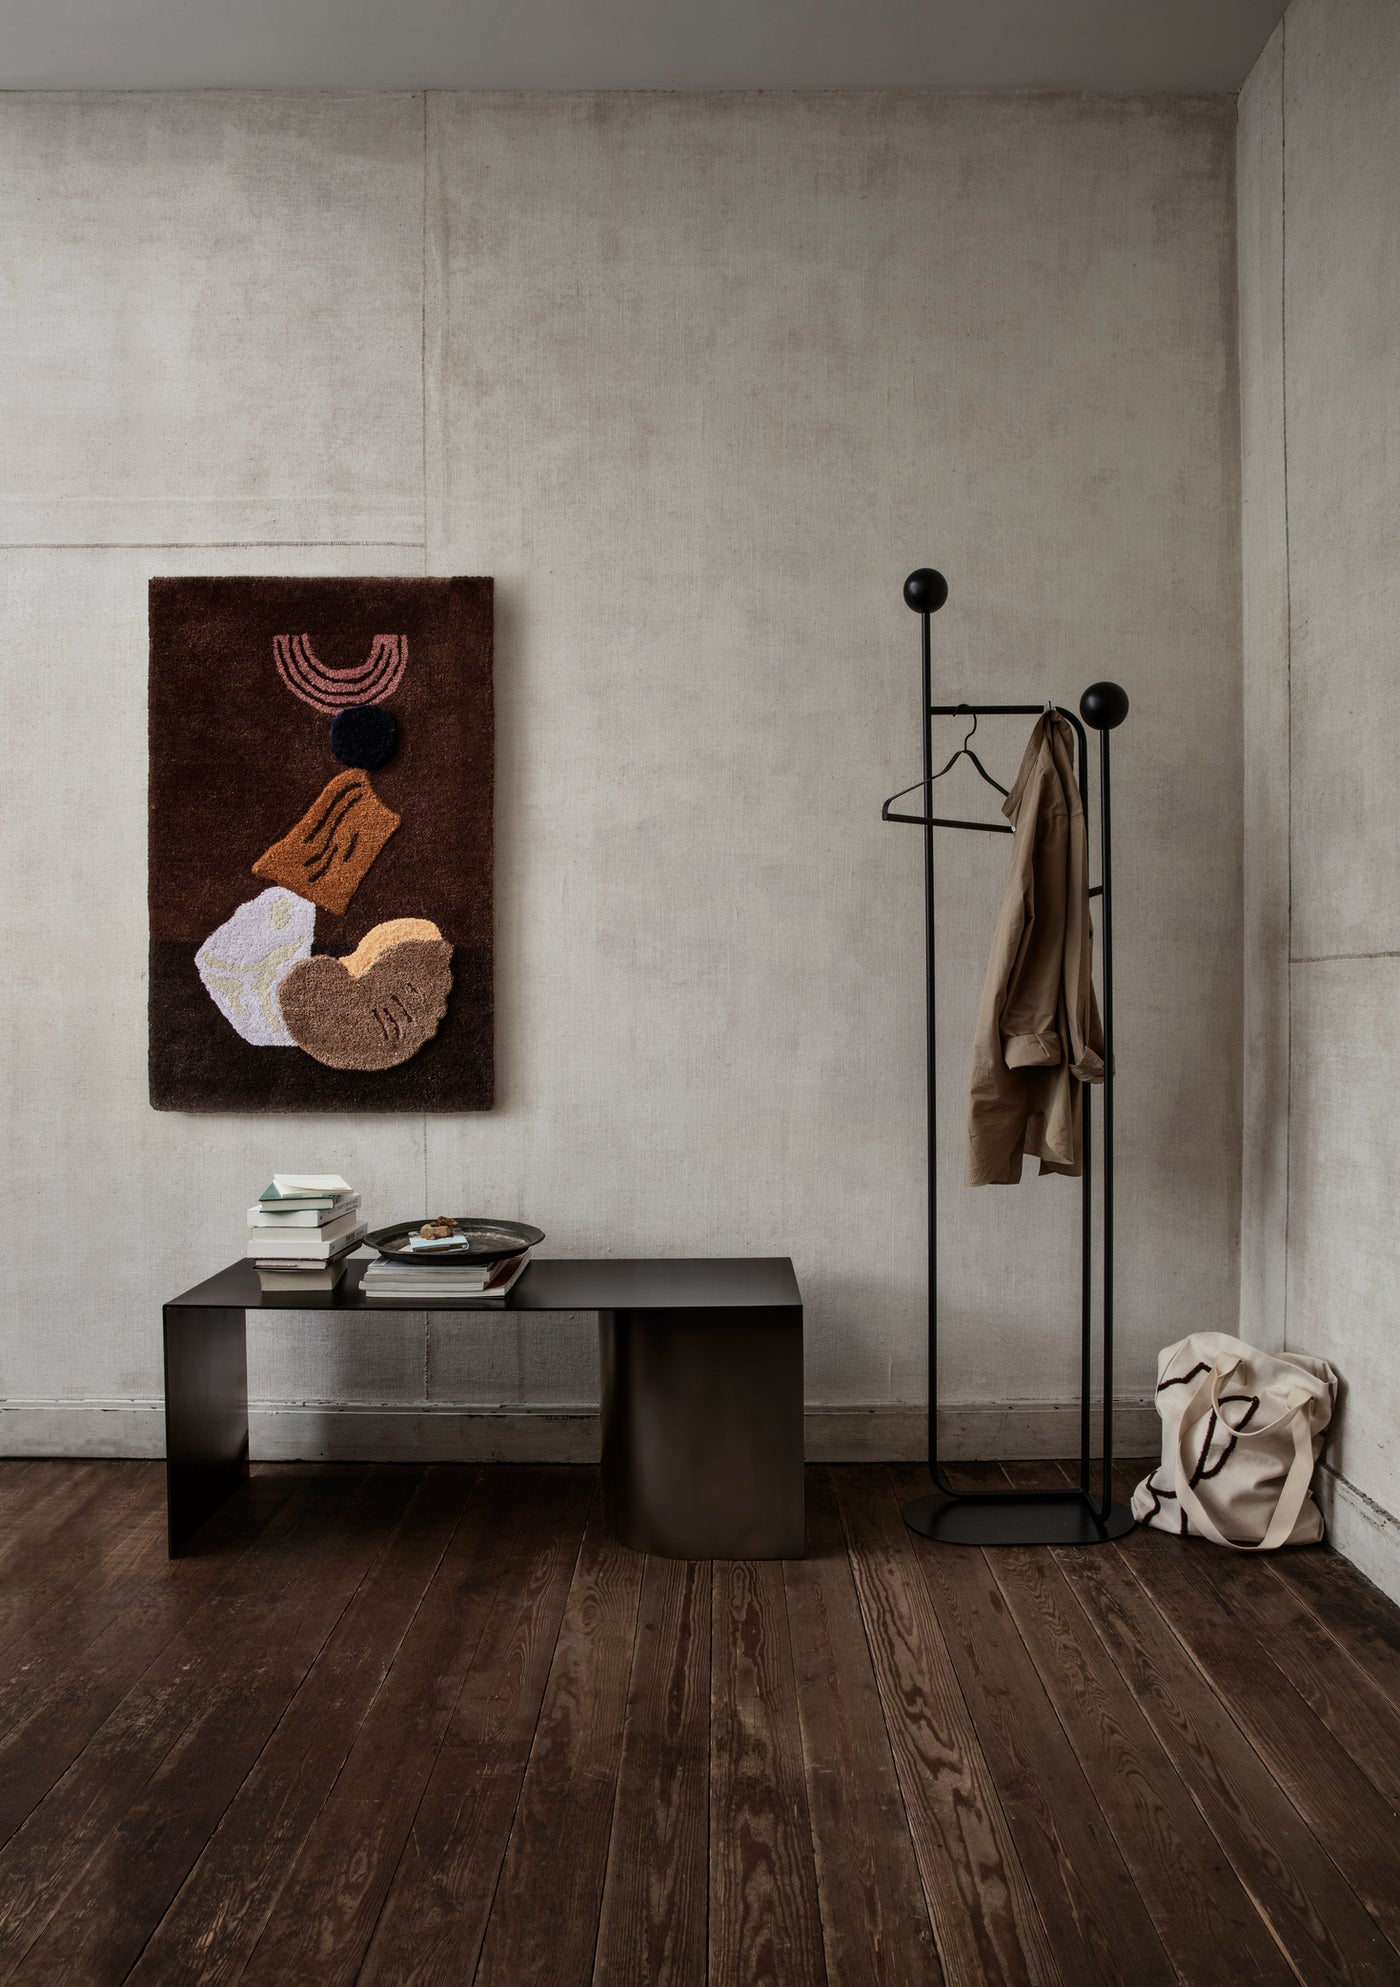 Ferm Living Pujo coat stand and Place Bench, available to buy from someday designs